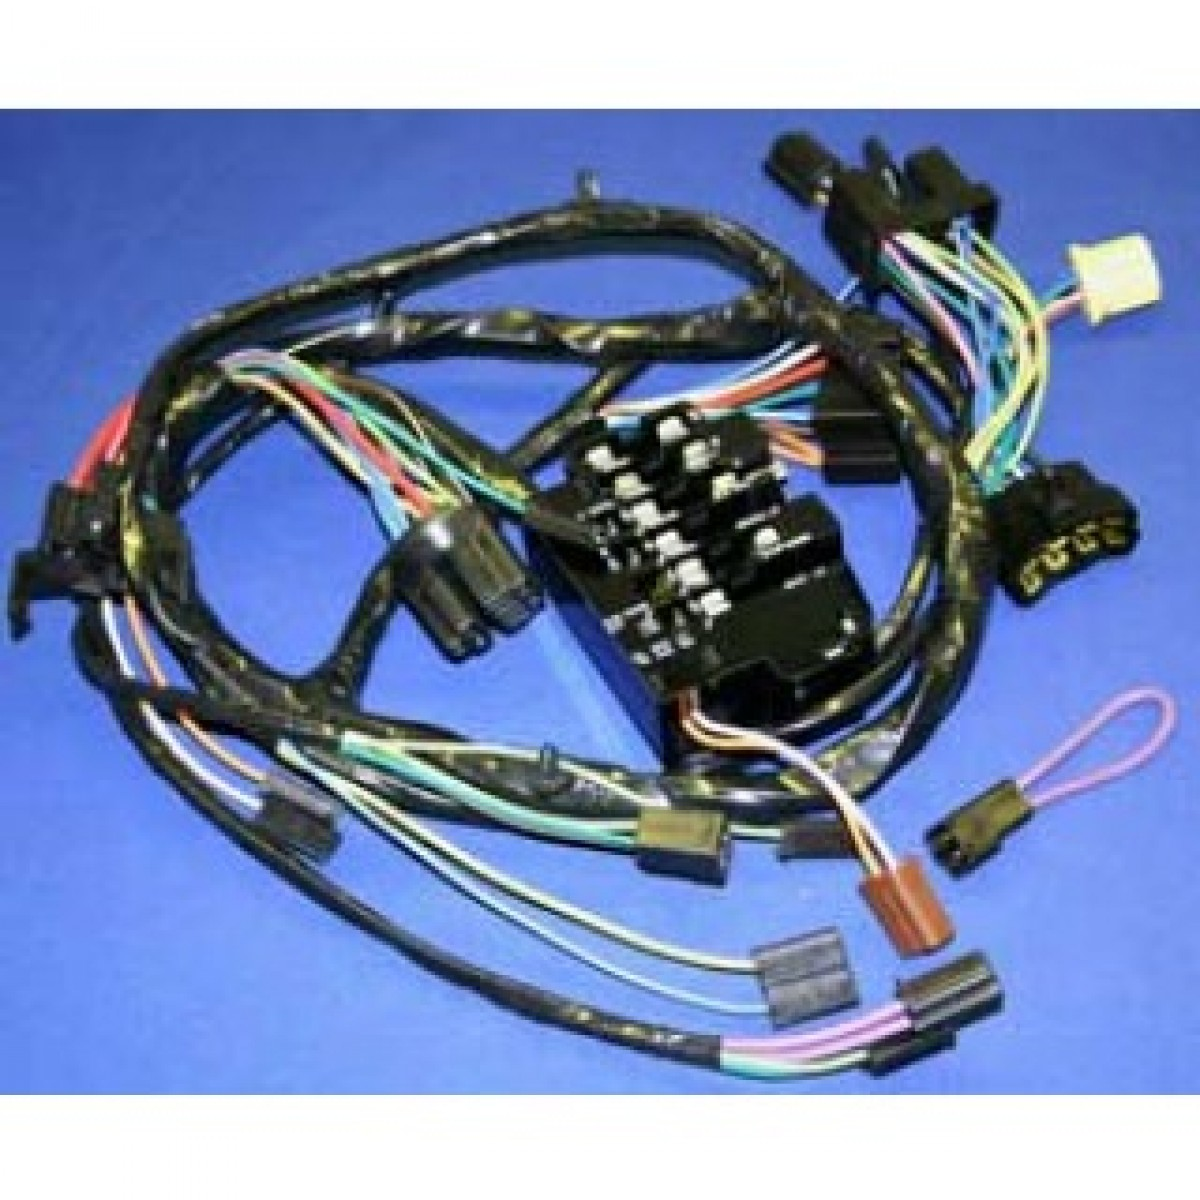 69 chevy c10 wiring harness  69  free engine image for